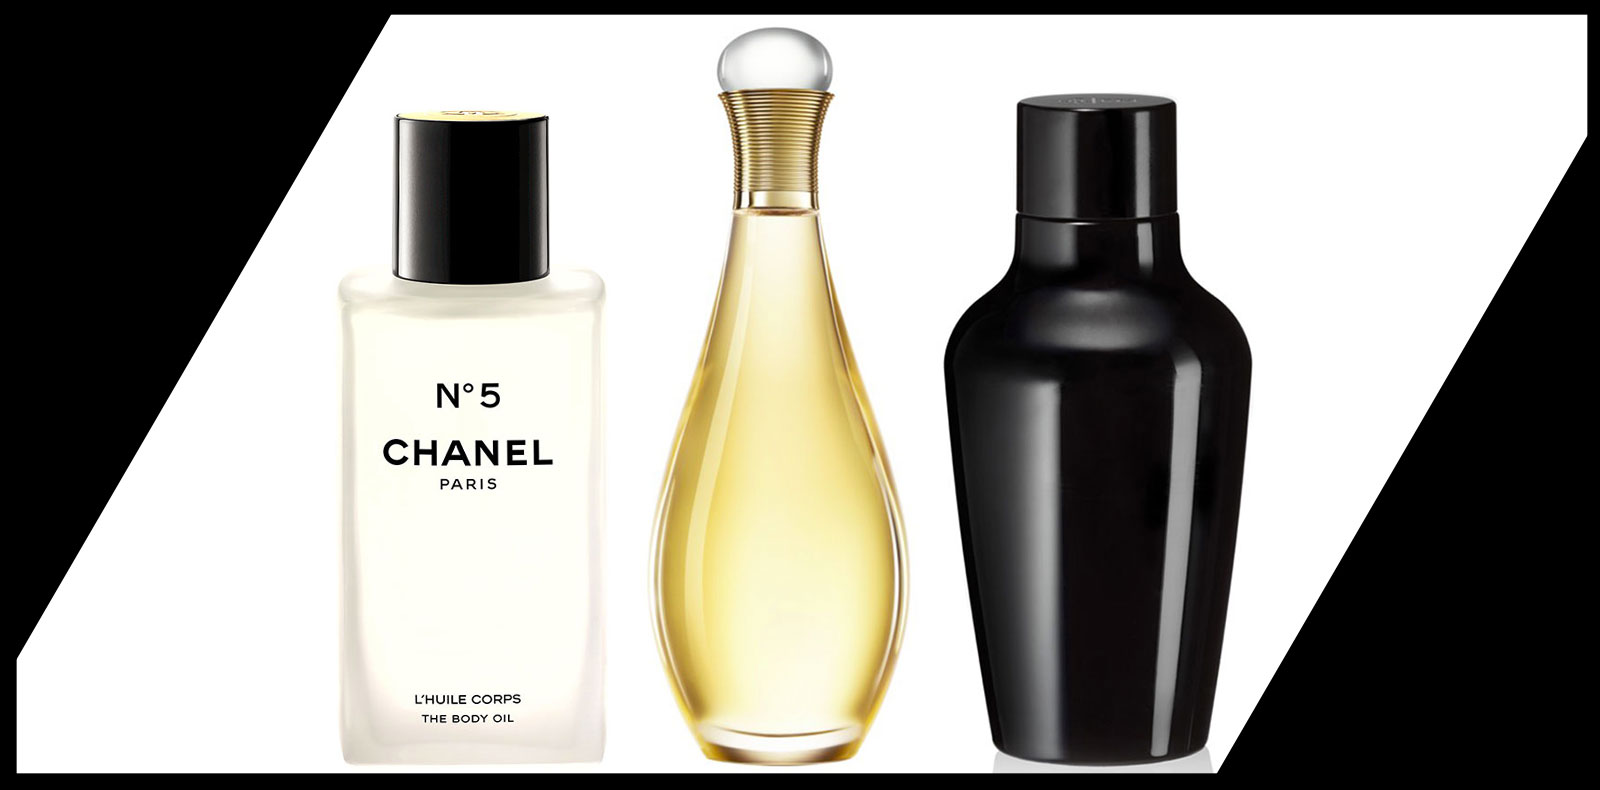 The body oil versions of classical perfumes